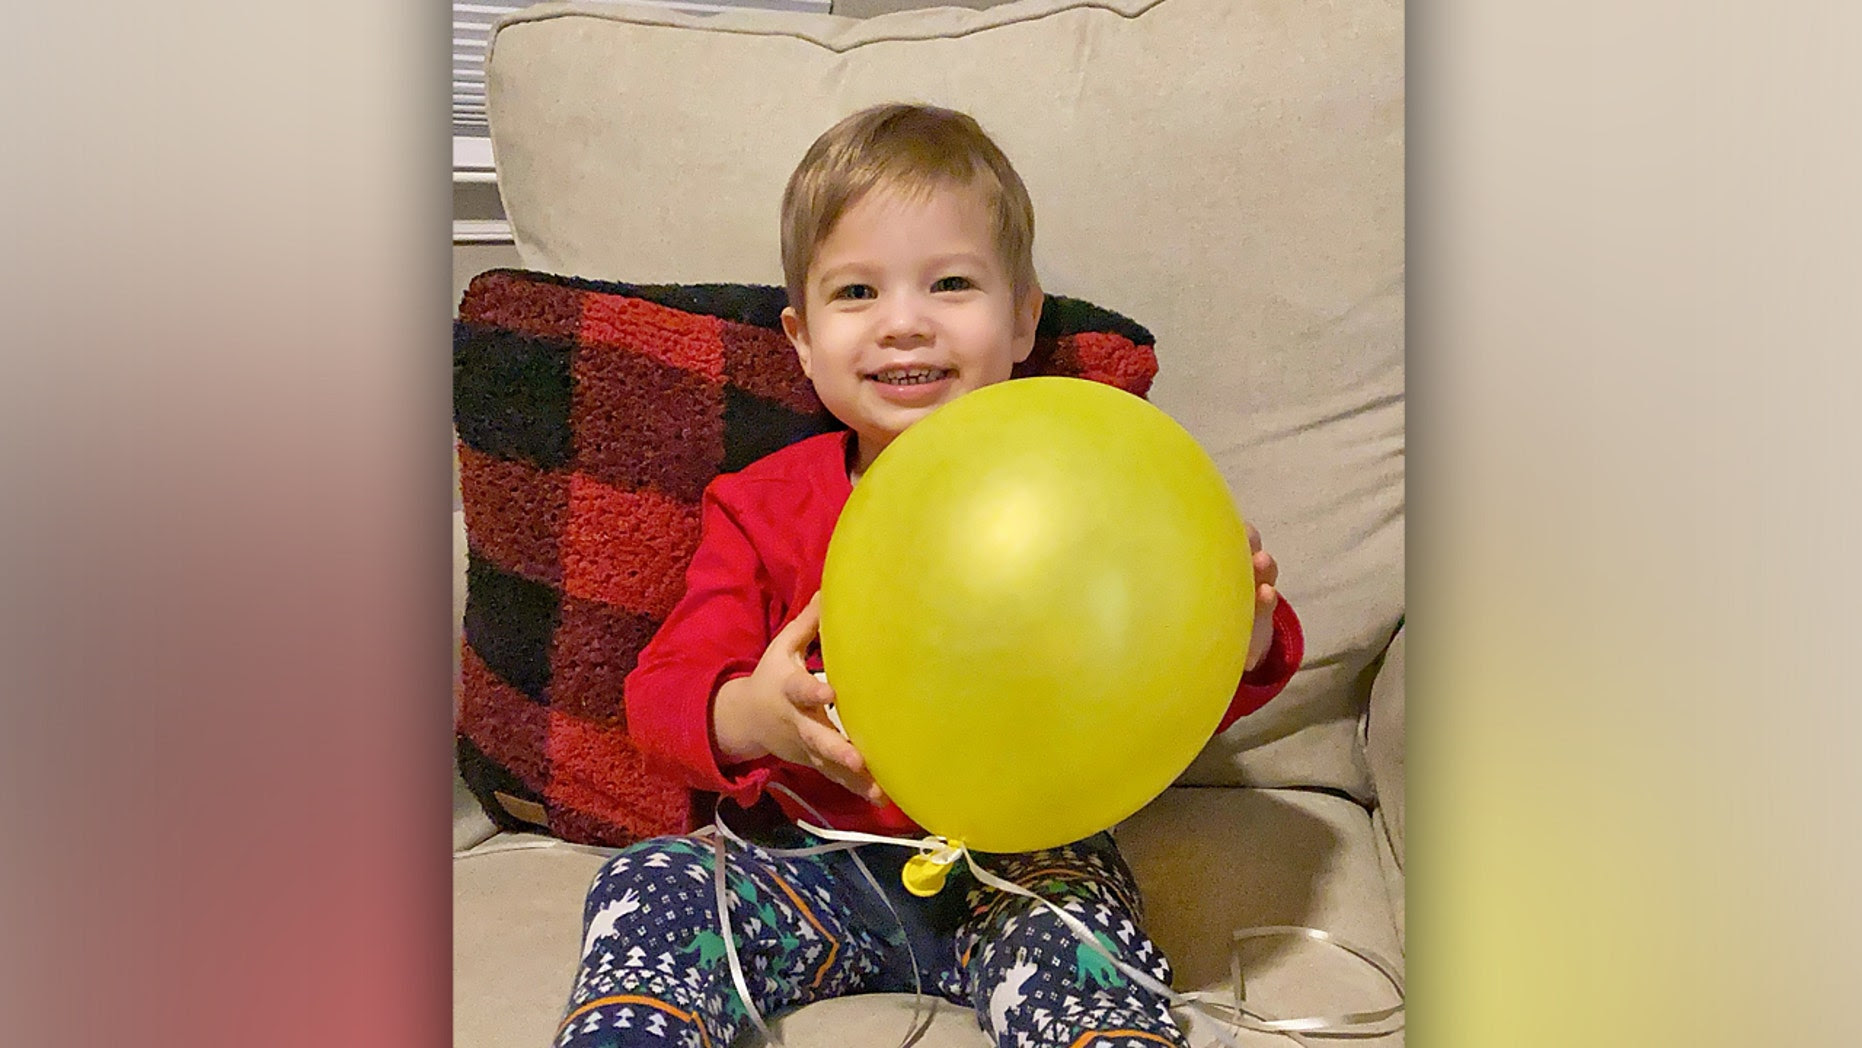 'Yellow Balloon Challenge' in West Virginia goes viral with acts of kindness